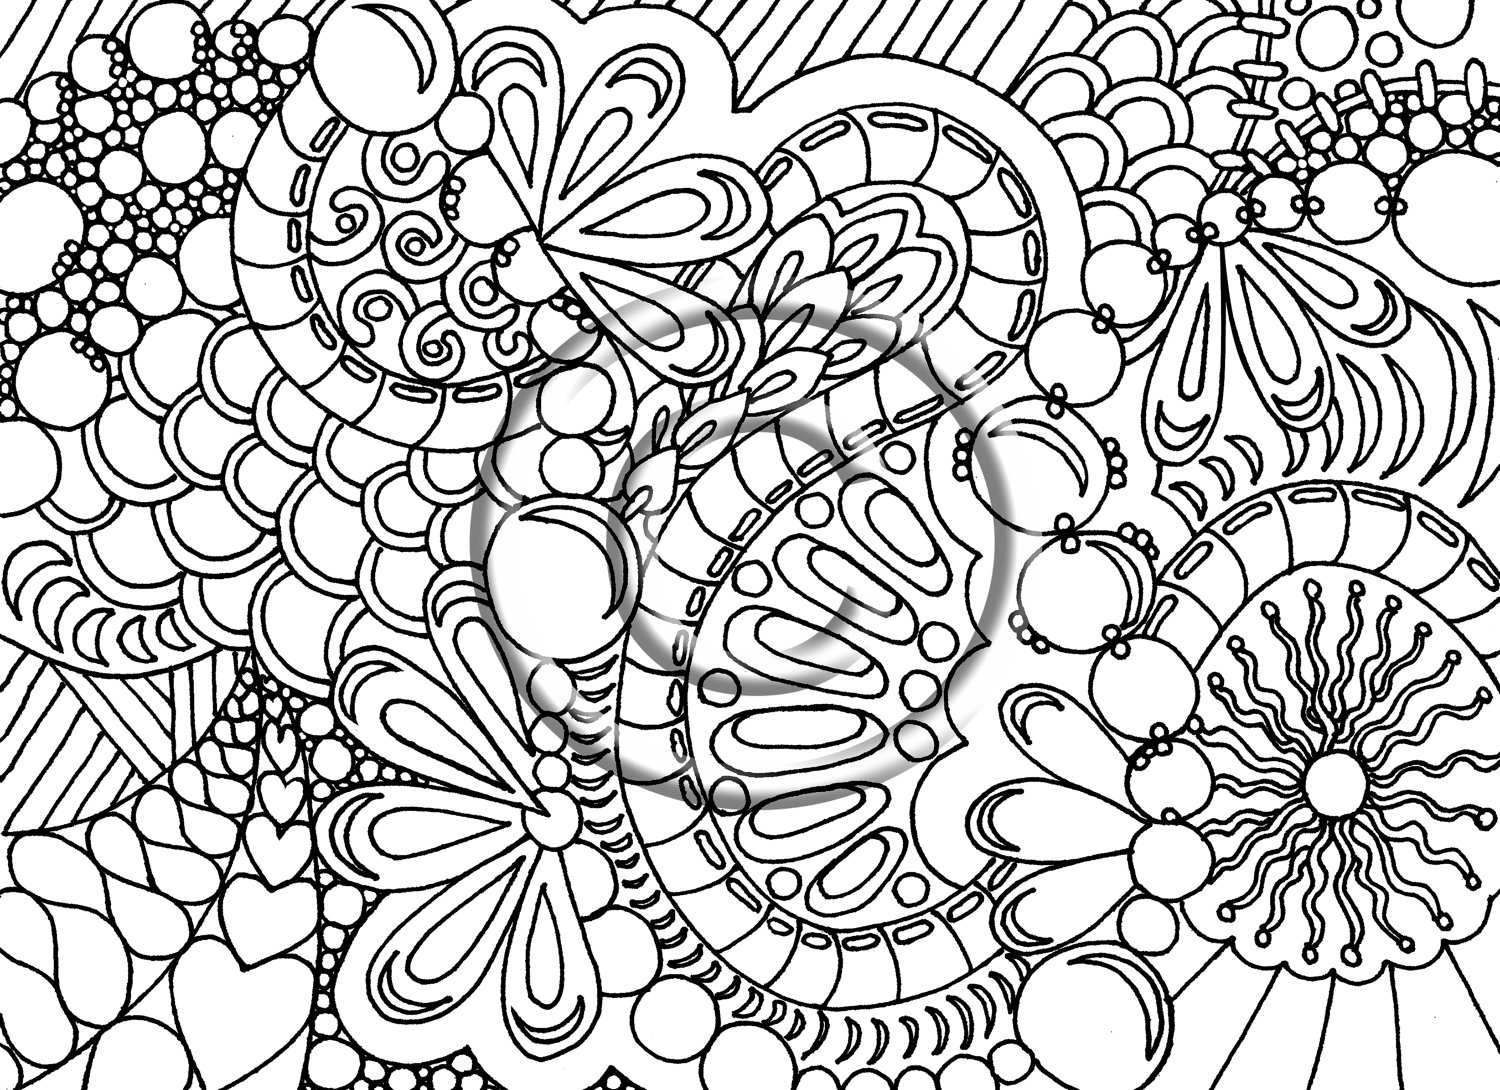 abstract coloring pages for kids abstract coloring page for adults high resolution free for pages abstract coloring kids